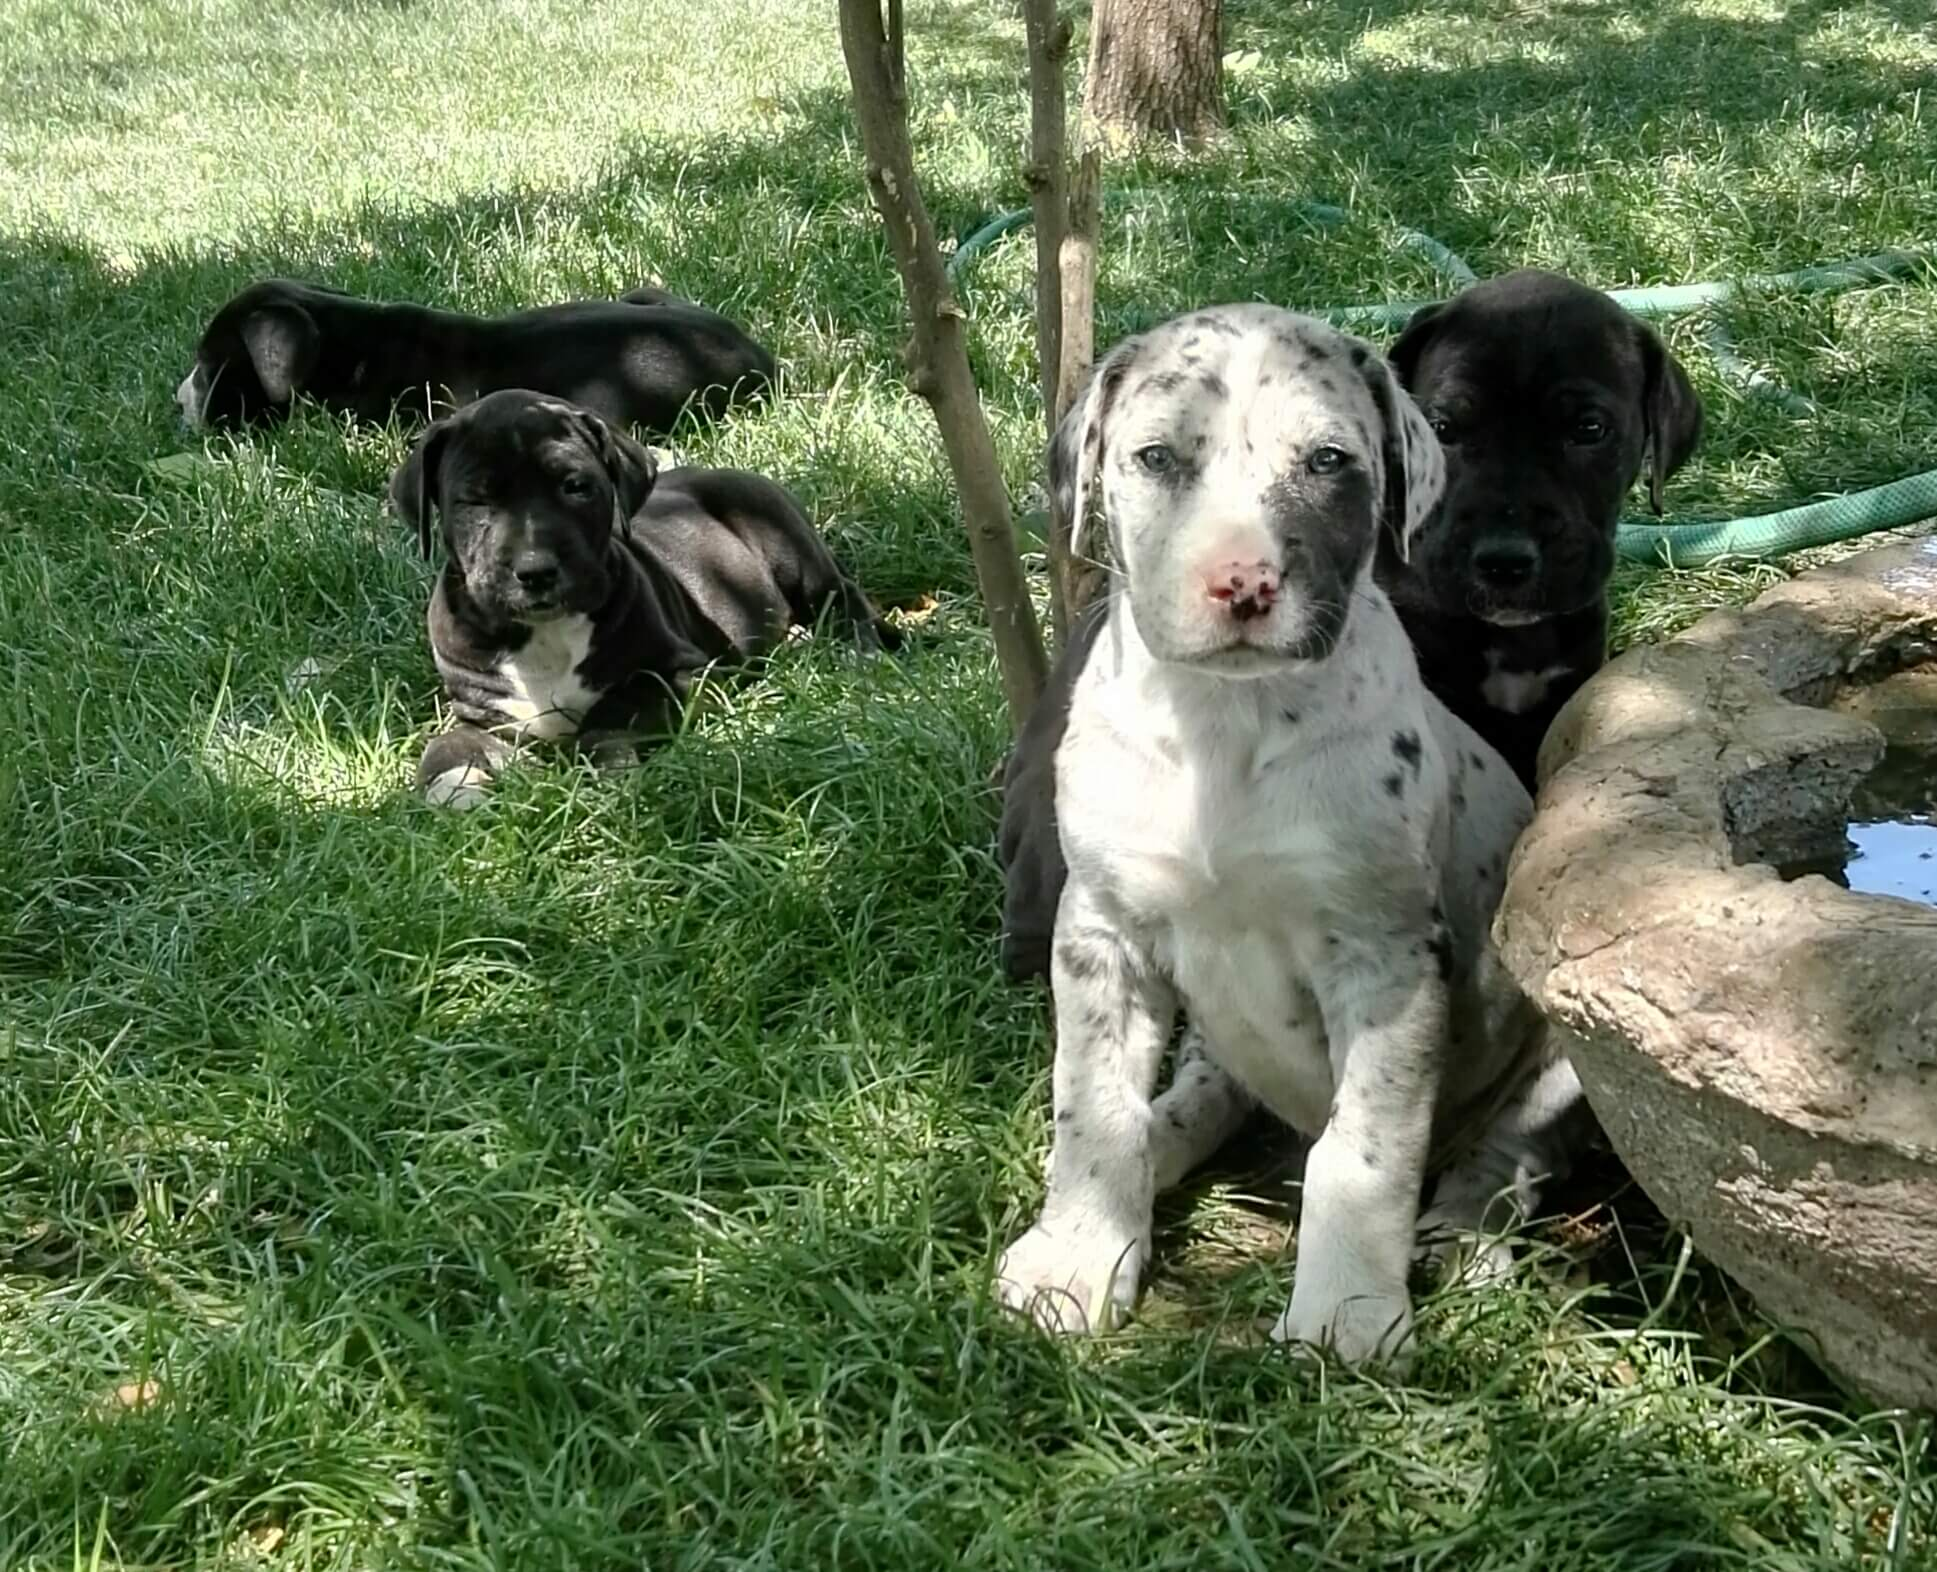 Great Dane Puppies for Sale in Johannesburg by Surika Piater